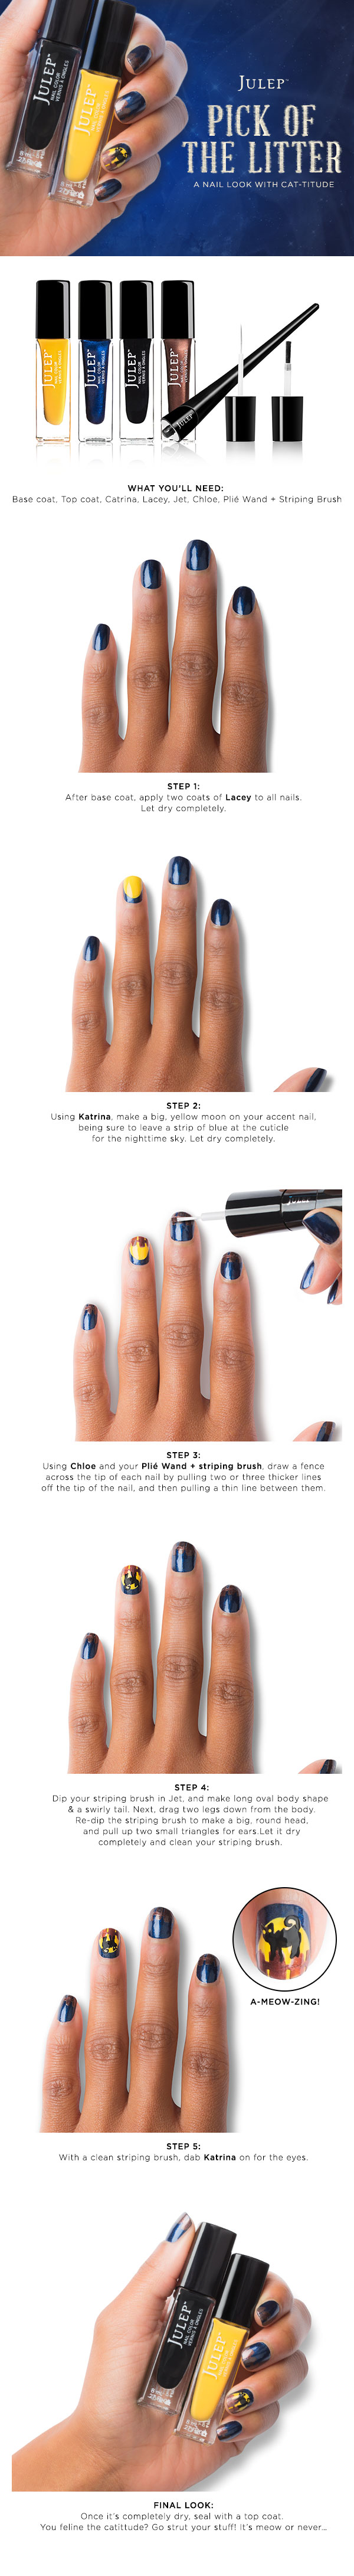 Julep's Halloween Nail Art Contest